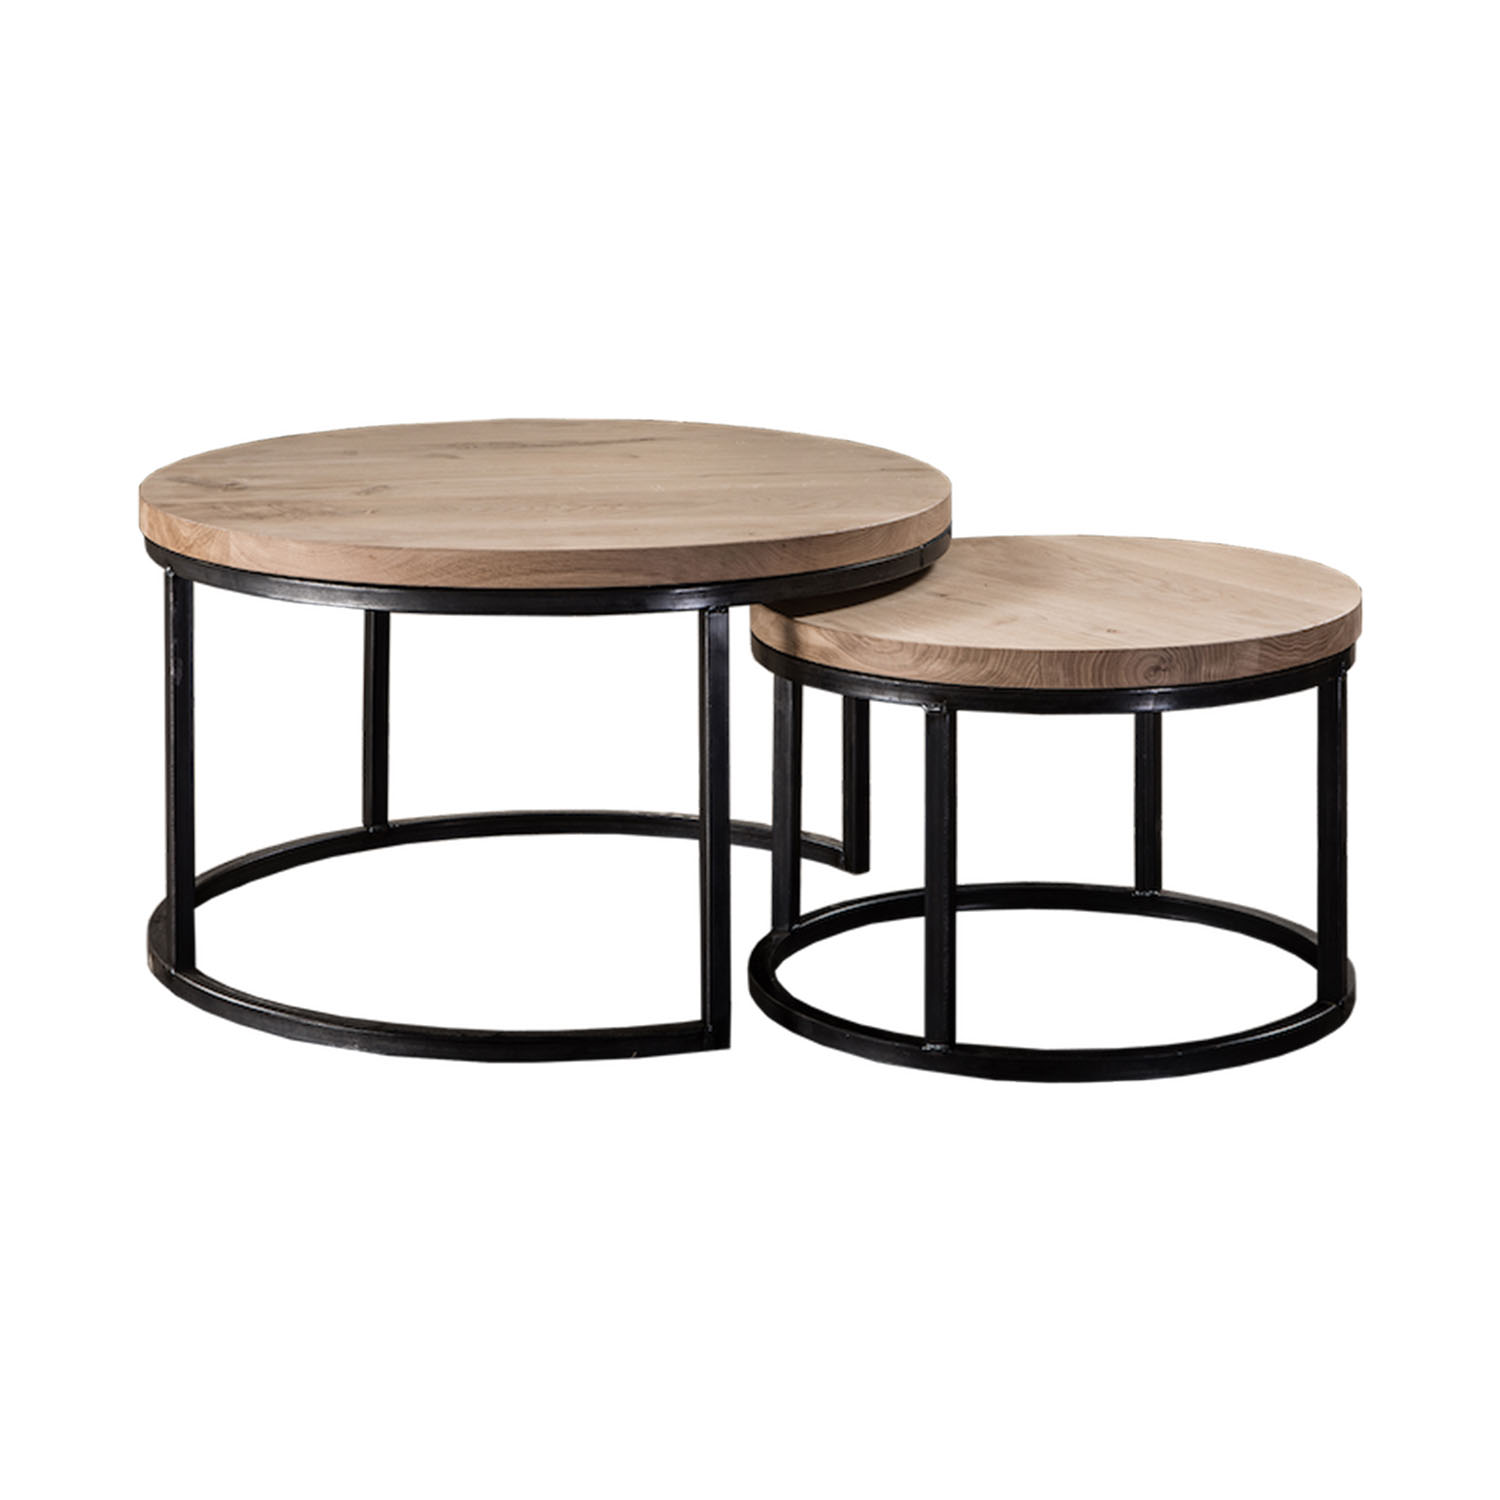 table basse gigogne ronde bois lille maison. Black Bedroom Furniture Sets. Home Design Ideas